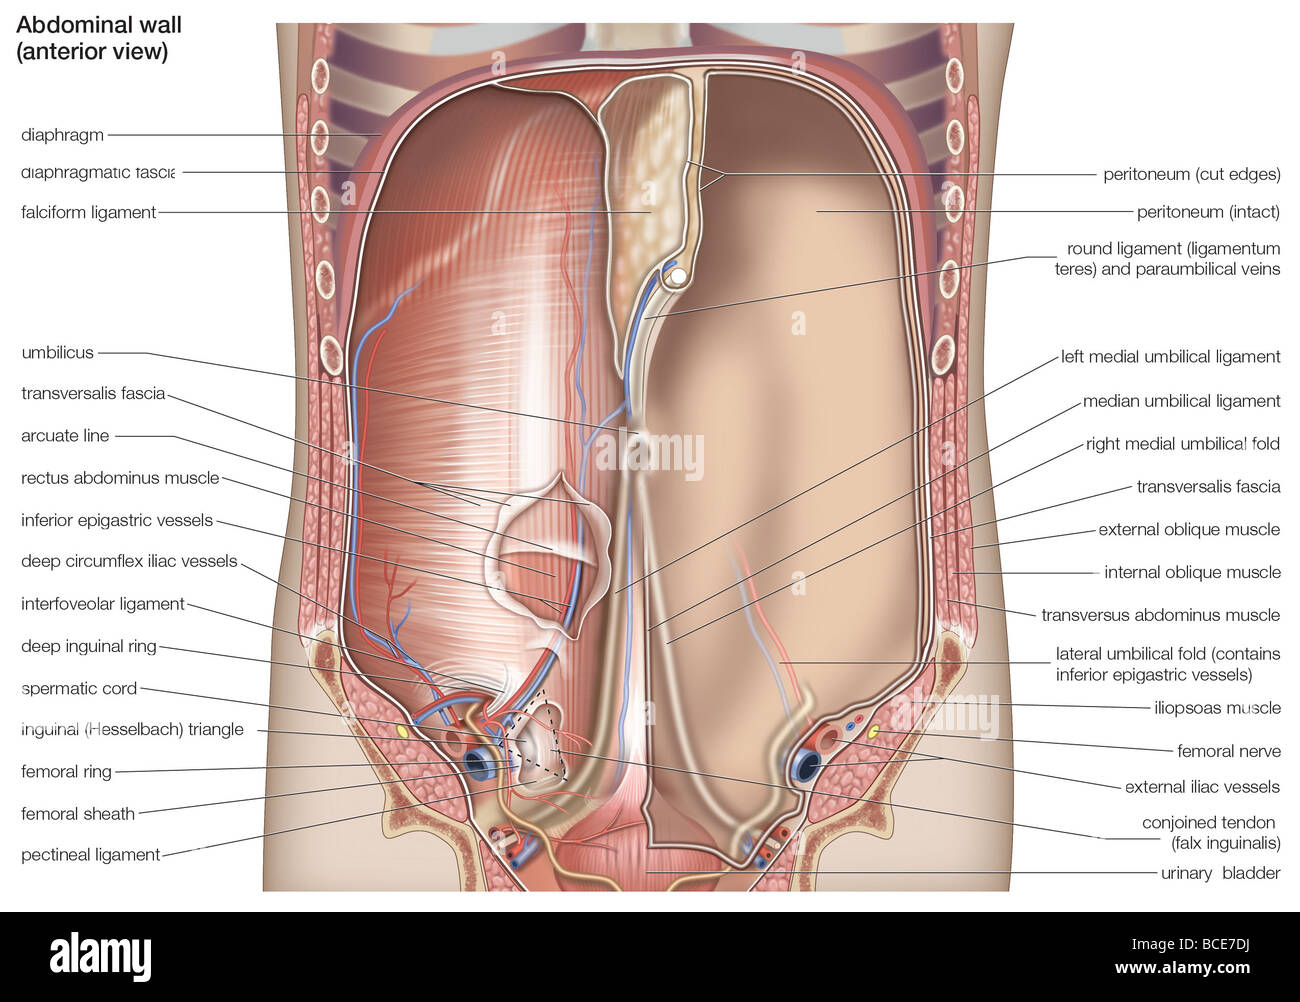 Anterior view of the human abdominal cavity. - Stock Image